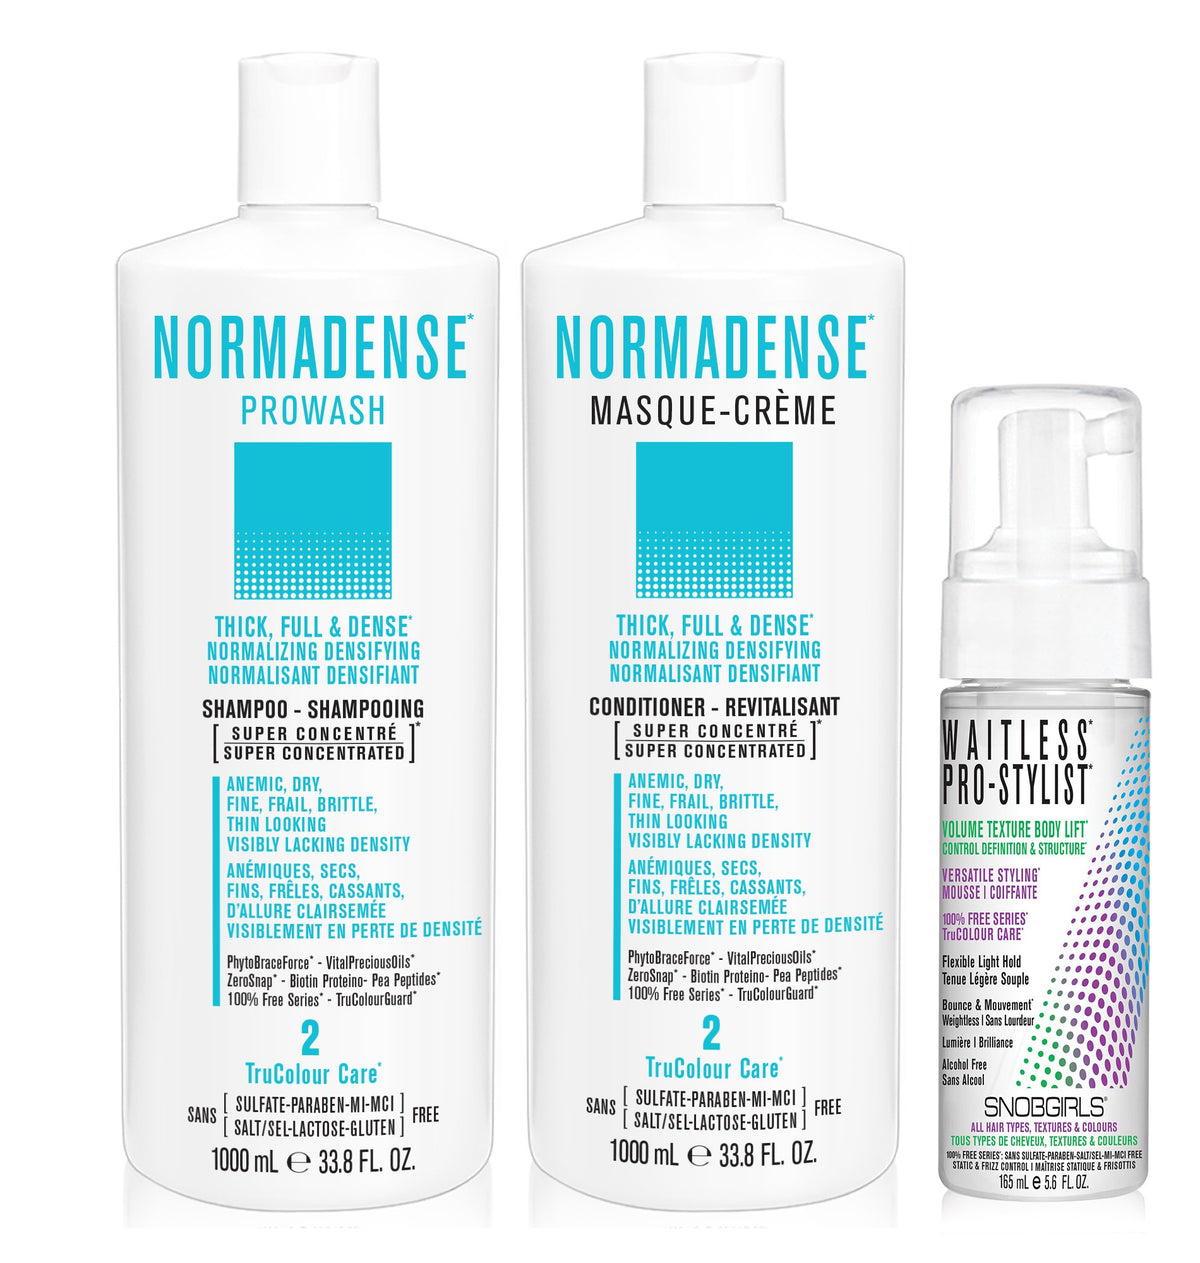 DUO NORMADENSE 2 Bundle- 1 Shampoo with 1 Conditioner 1000 mL and 1 Styling Mousse - SNOBGIRLS Canada